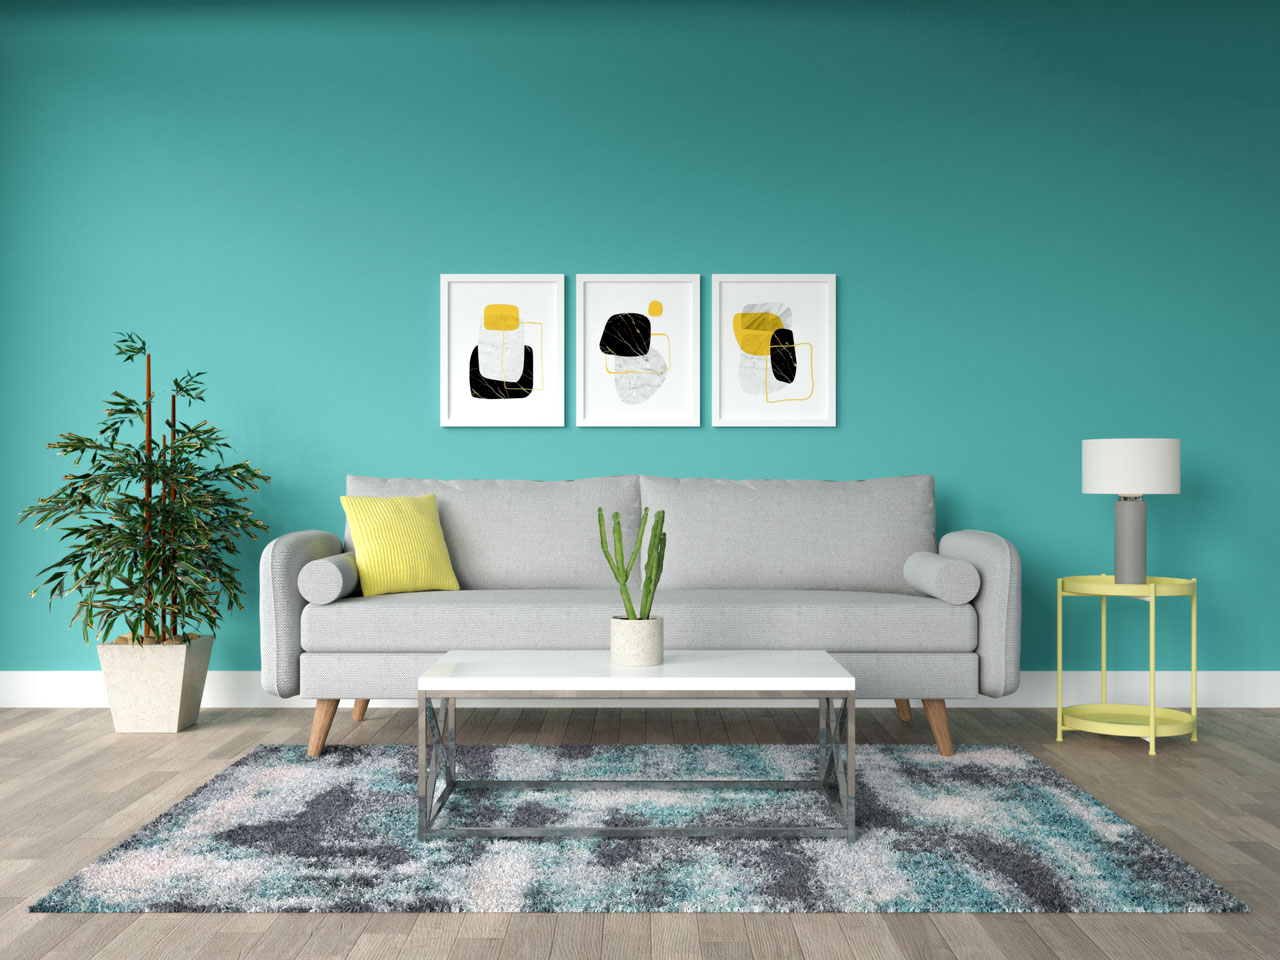 Gray and yellow furnishings inside living room with teal walls